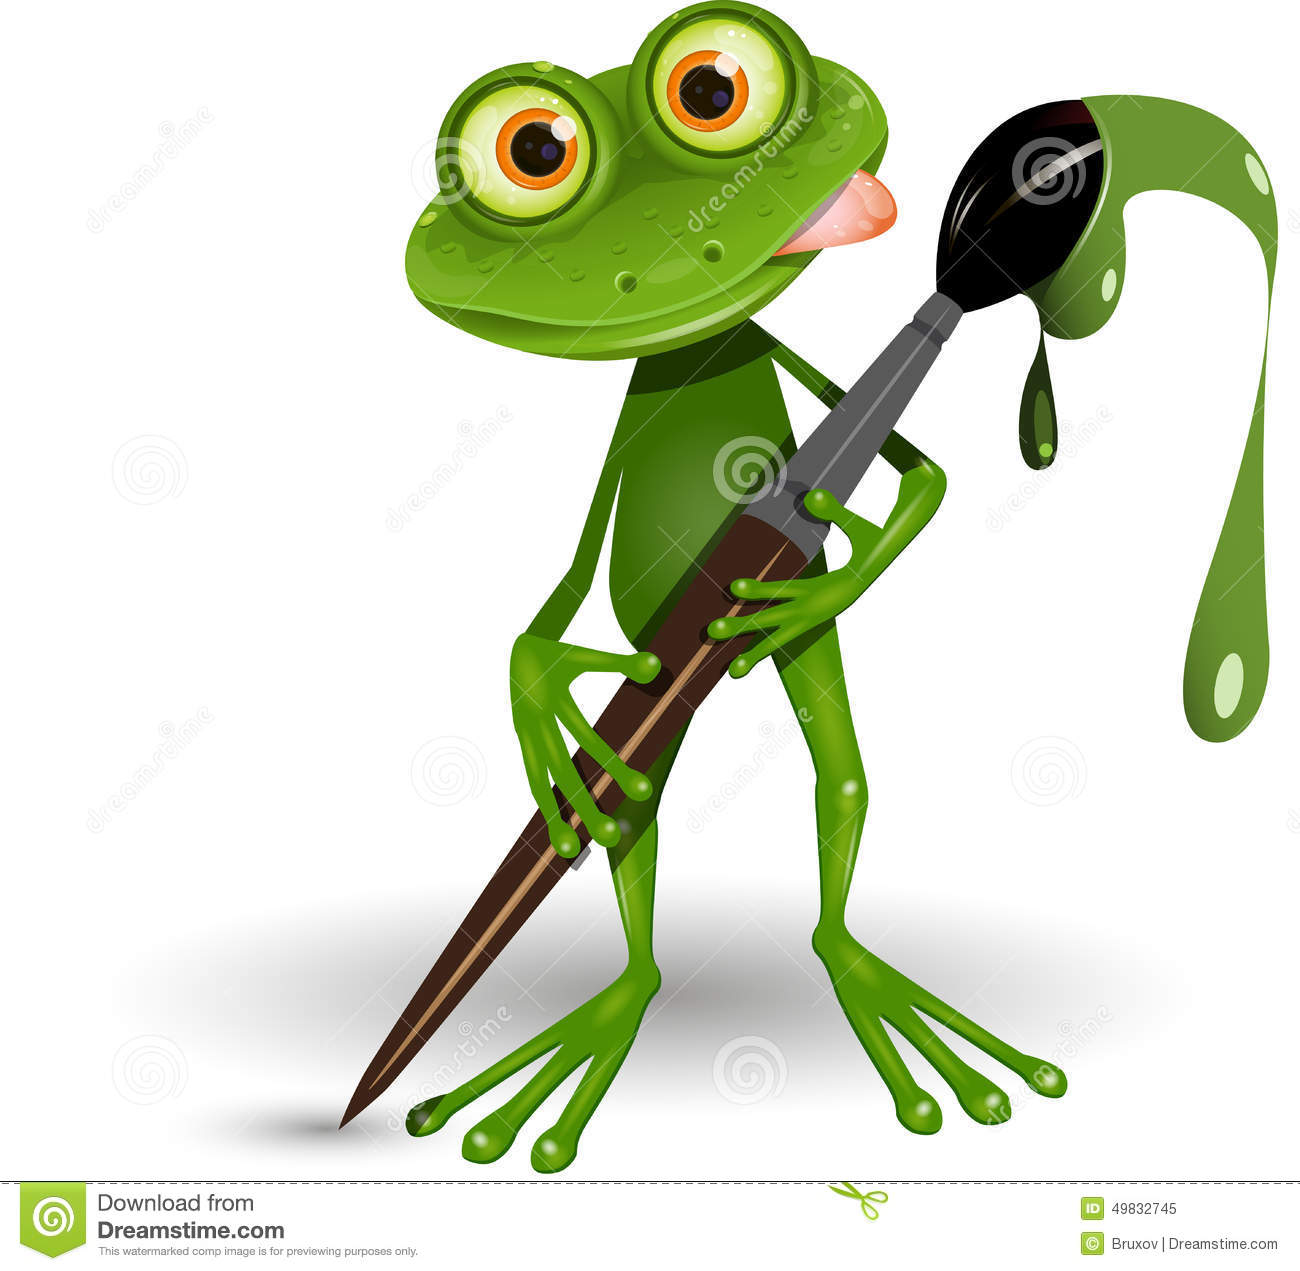 Frog Paint Stock Illustrations – 332 Frog Paint Stock Illustrations ...